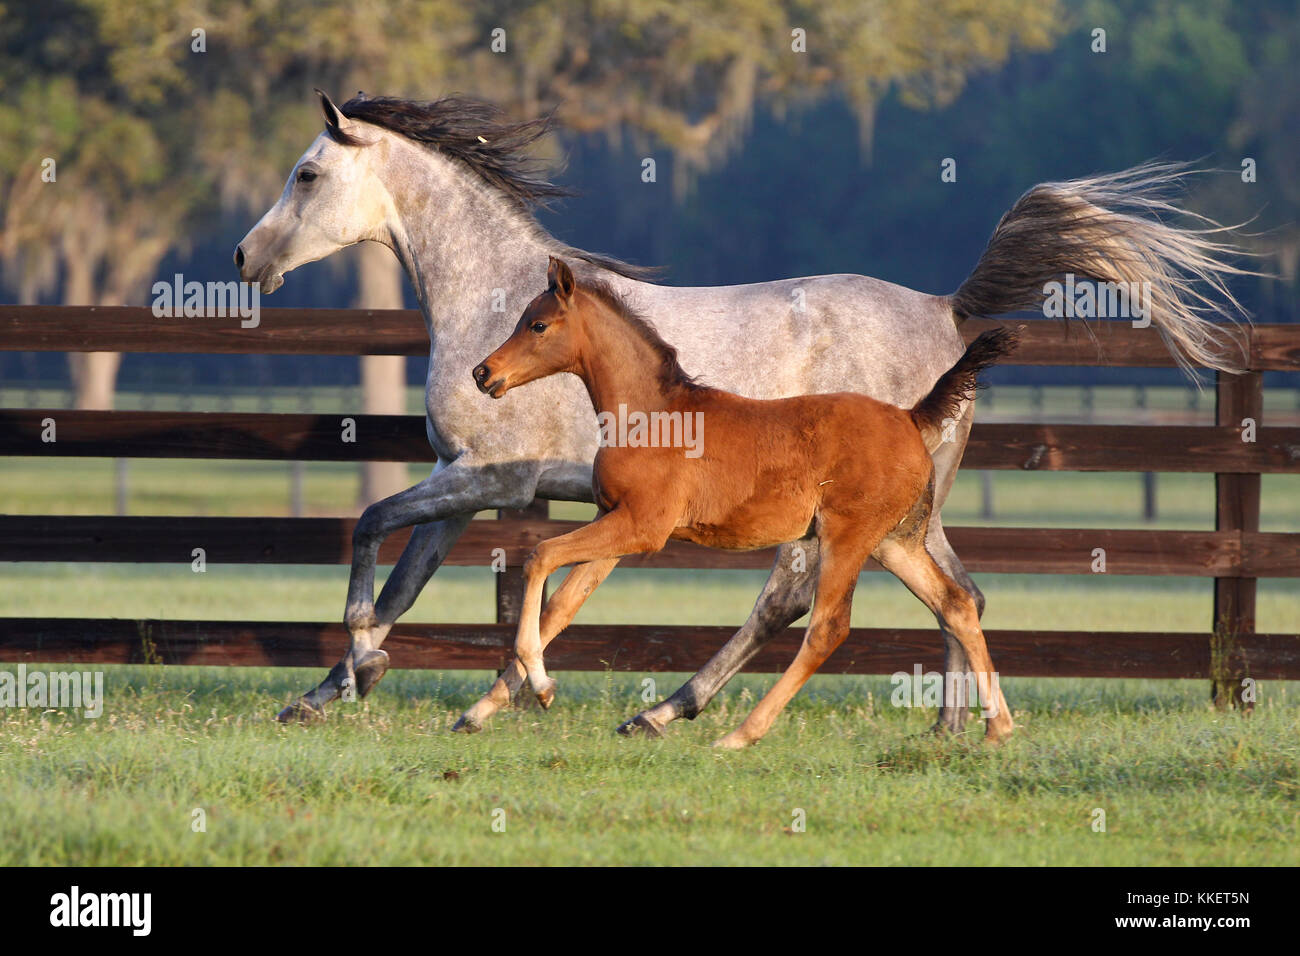 Arab Mare And Foal Cantering Together In Field - Stock Image